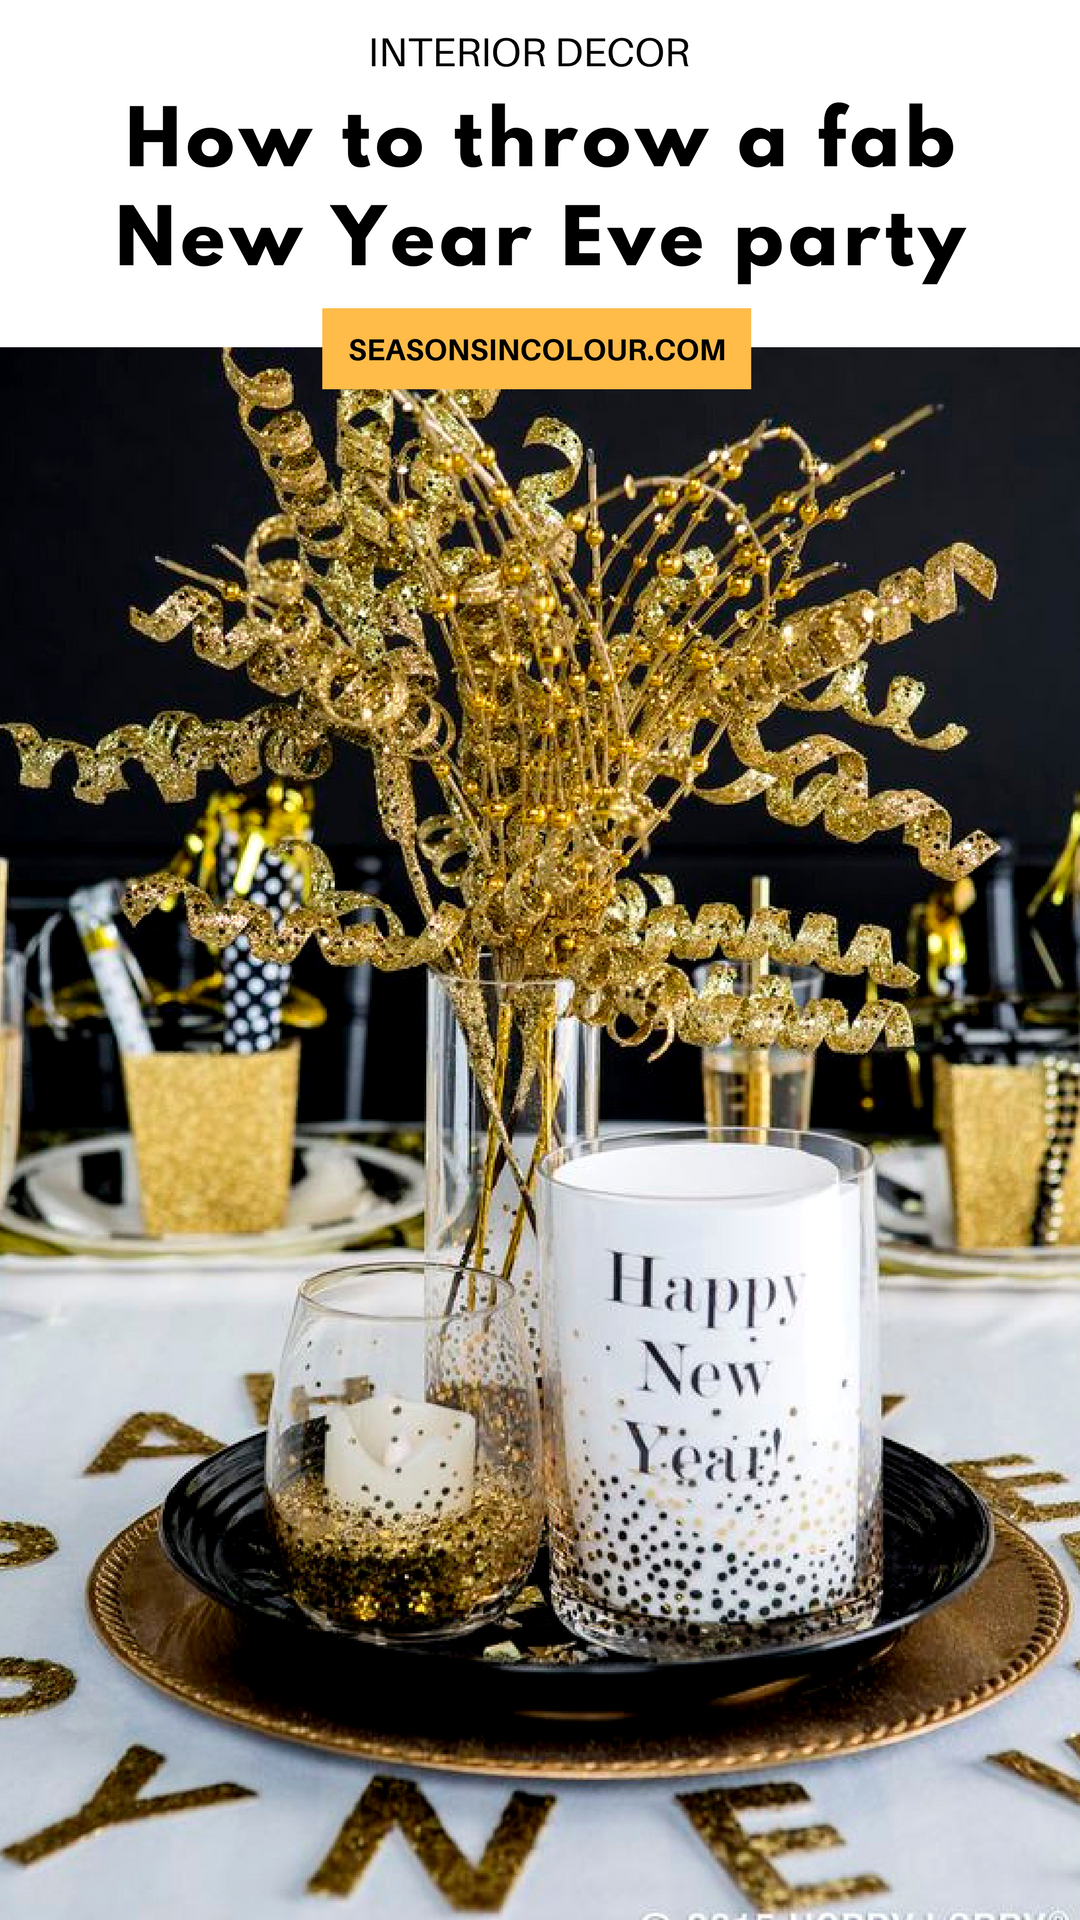 I thought I would share some of my favourite ways in which you can transform your home, making it look like the set of The Great Gatsby. From drinks to decorations and everything in-between, I hope these New Year's party tips help you to create the look you desire, easily and affordably. #newyearseve #partydecor #gatsbydecor #golddecor